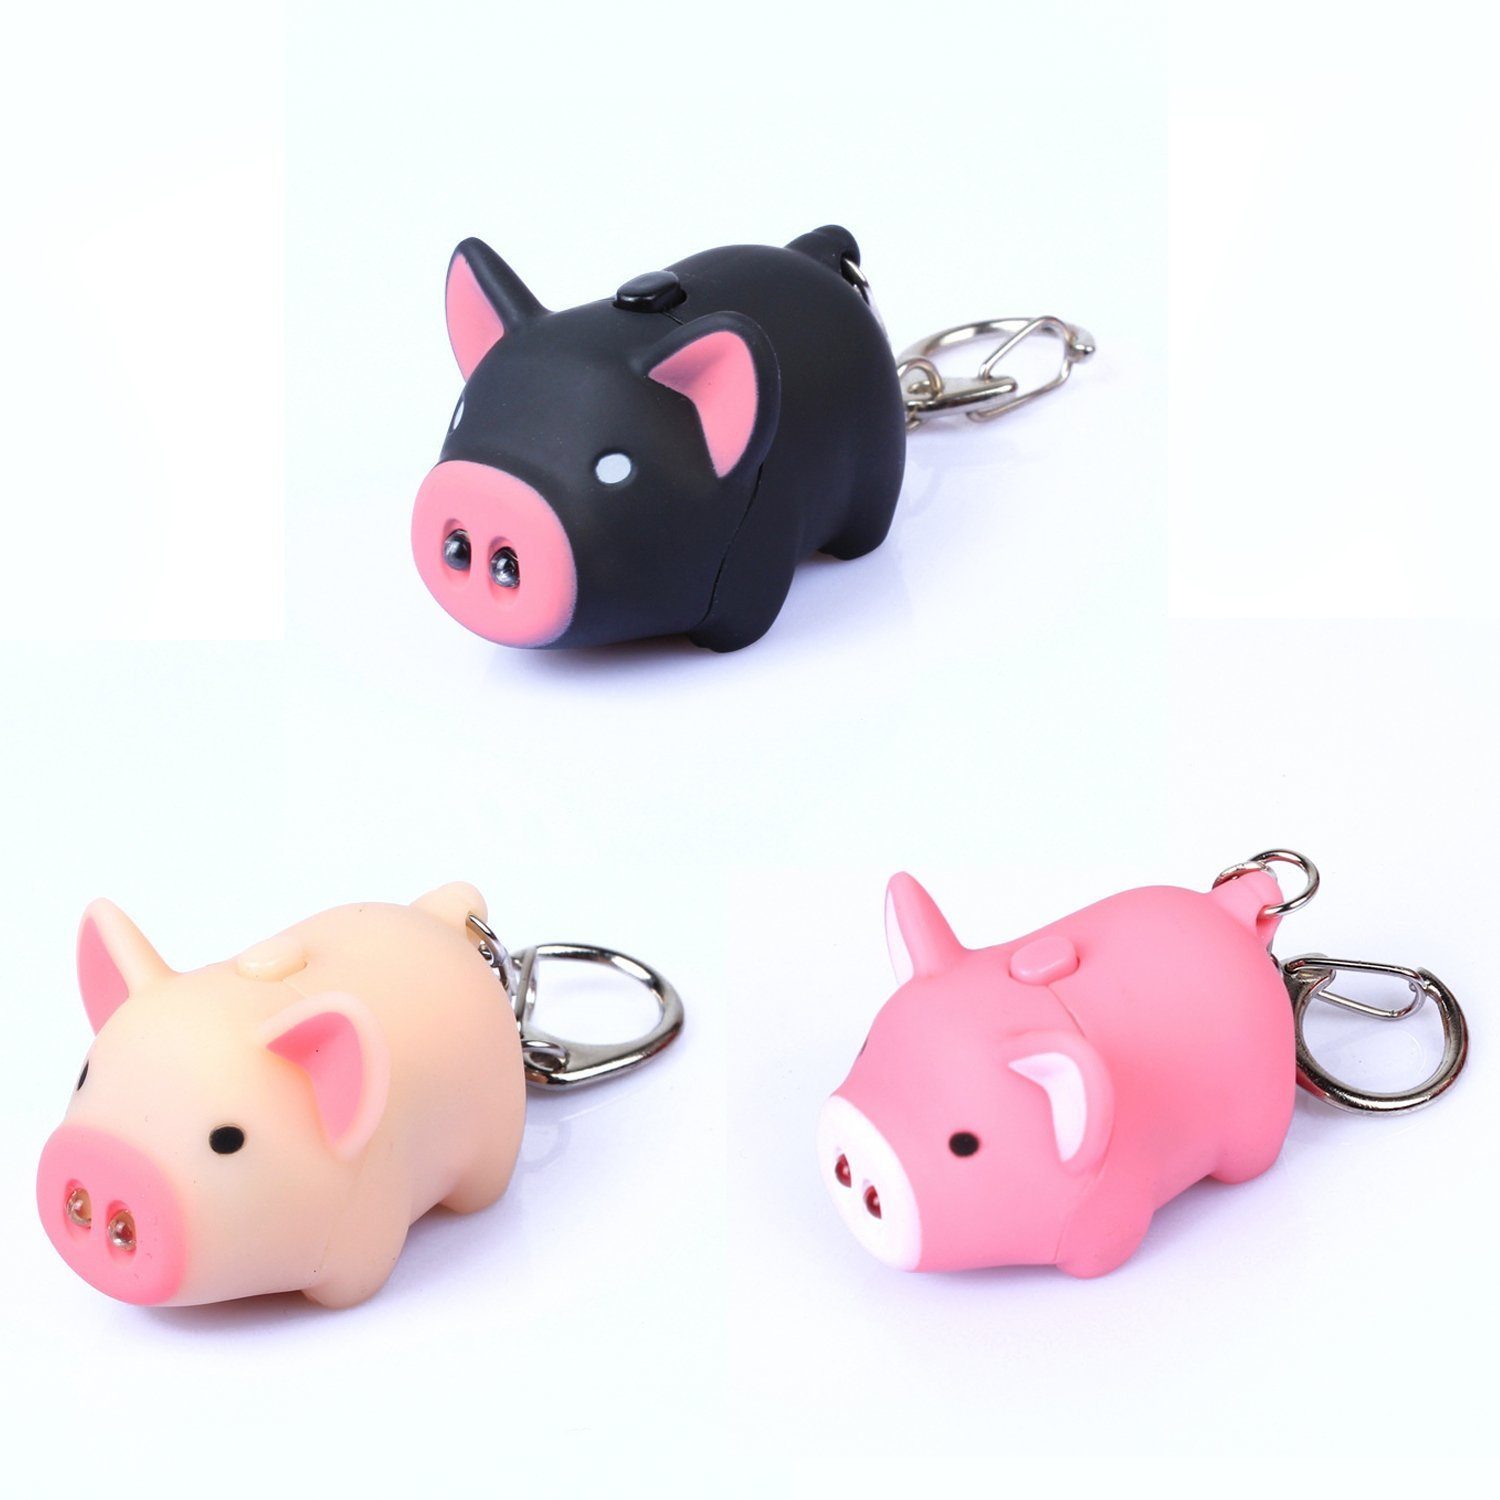 Oink Piggy Animal Keychain With Led Light And Sound The